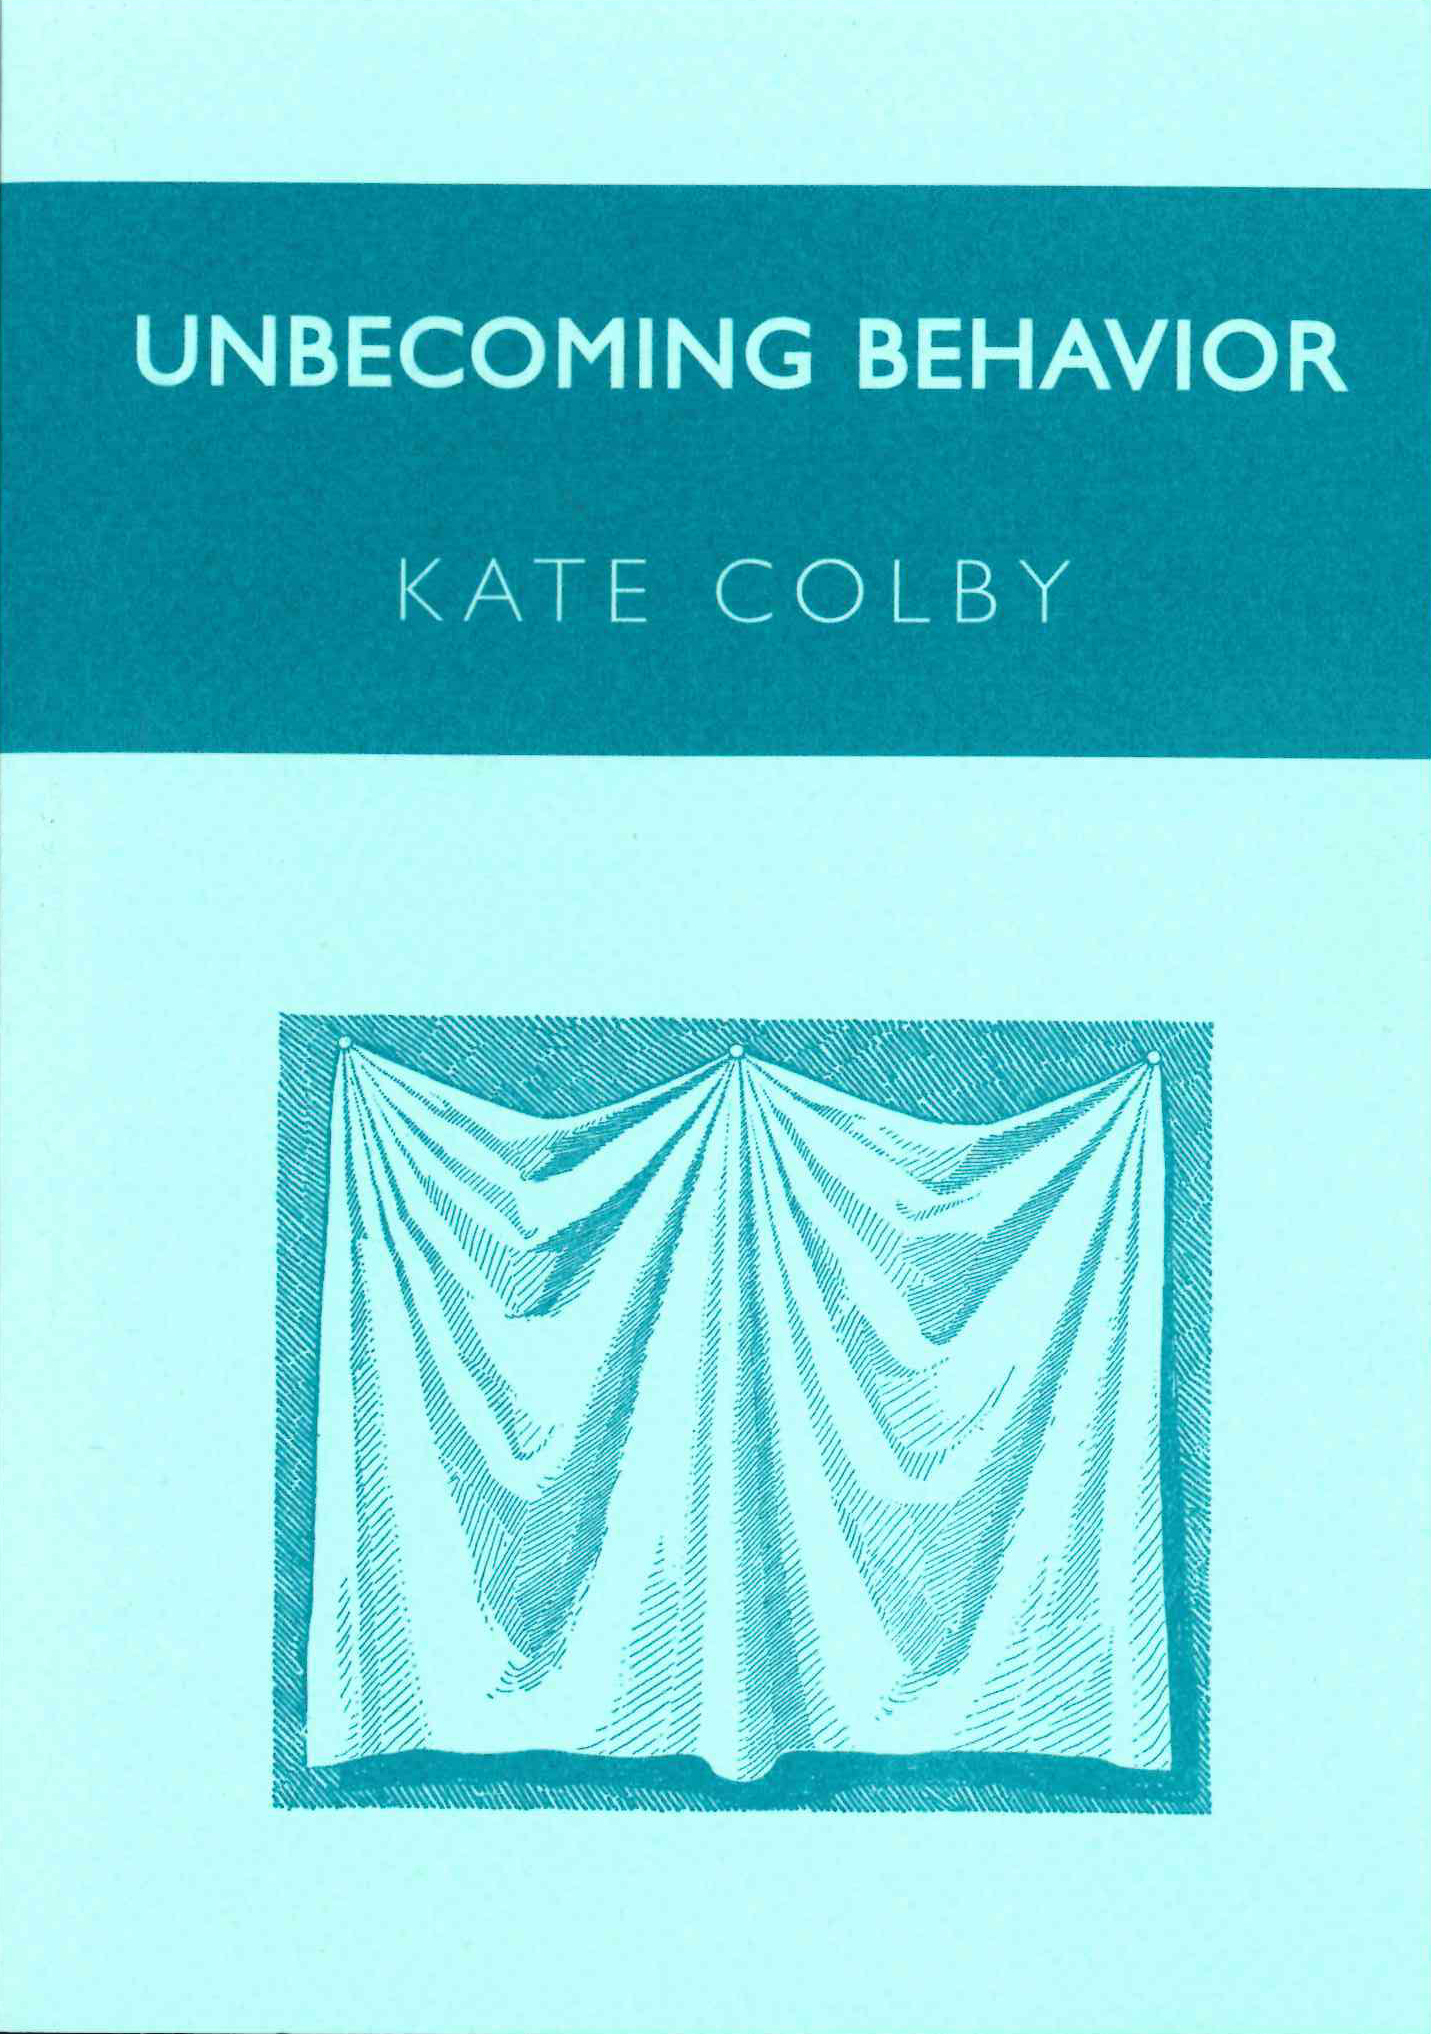 Unbecoming Behavior | Kate Colby | Ugly Duckling Presse